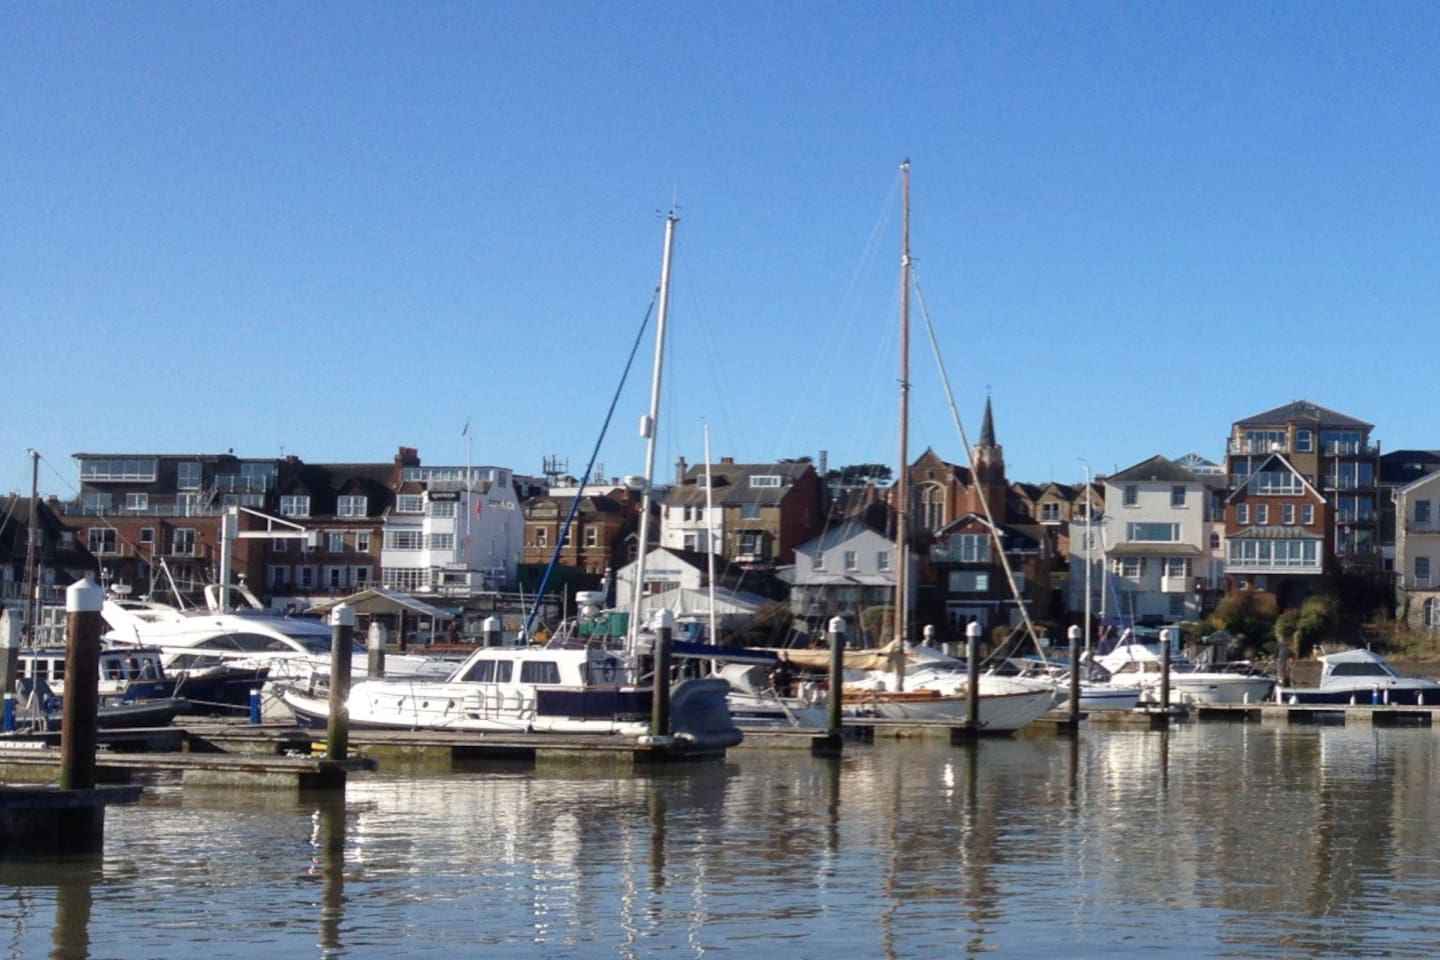 Just yards from Cowes' famous waterfront, Cringle Cottage is a perfect place to stay.